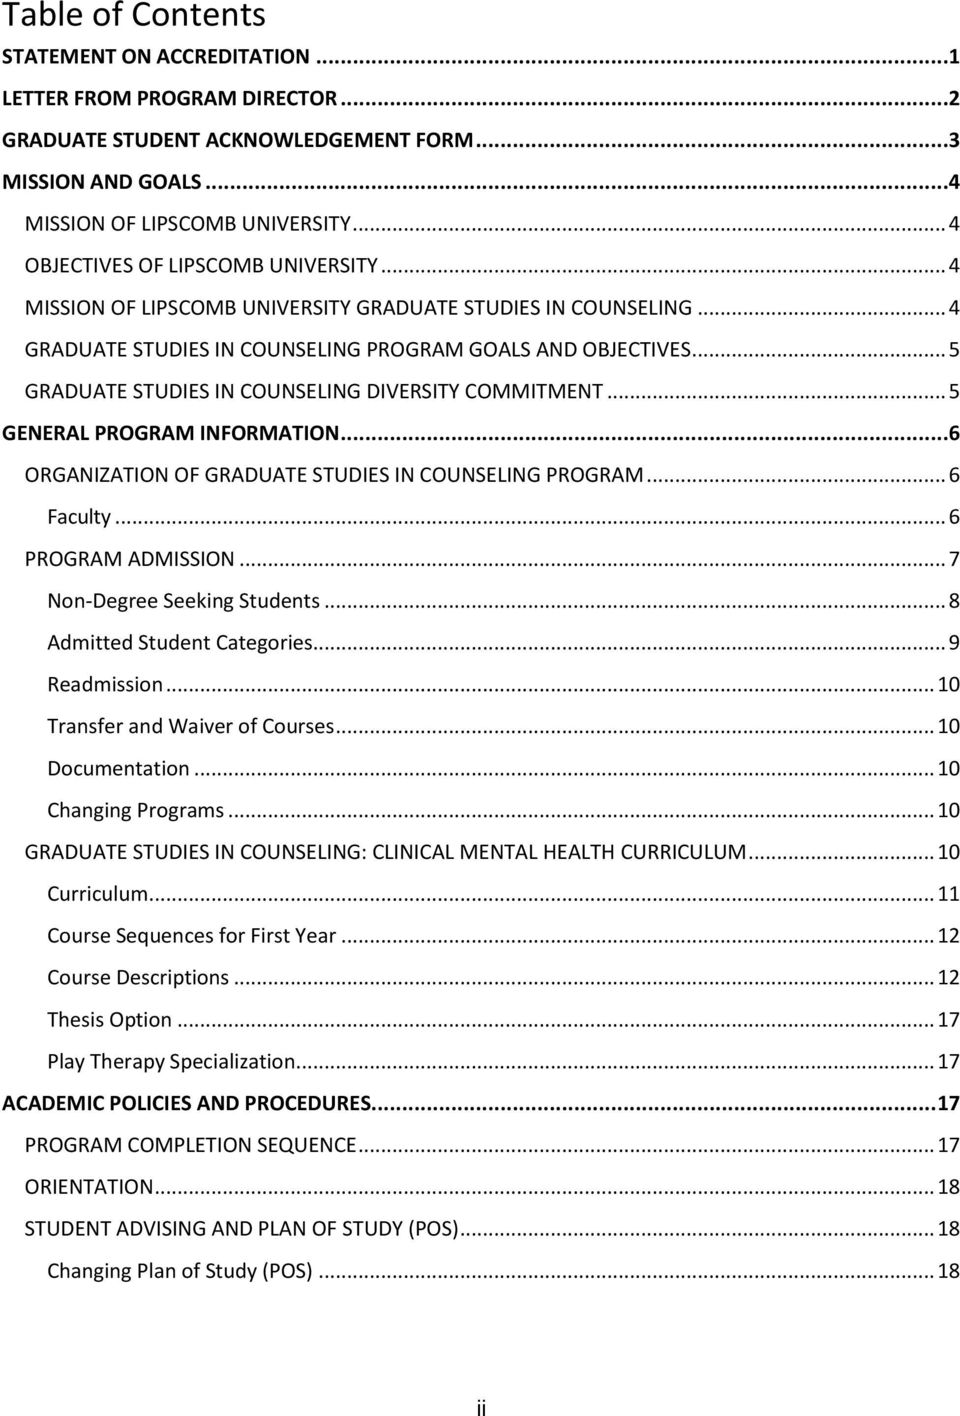 .. 5 GRADUATE STUDIES IN COUNSELING DIVERSITY COMMITMENT... 5 GENERAL PROGRAM INFORMATION...6 ORGANIZATION OF GRADUATE STUDIES IN COUNSELING PROGRAM... 6 Faculty... 6 PROGRAM ADMISSION.